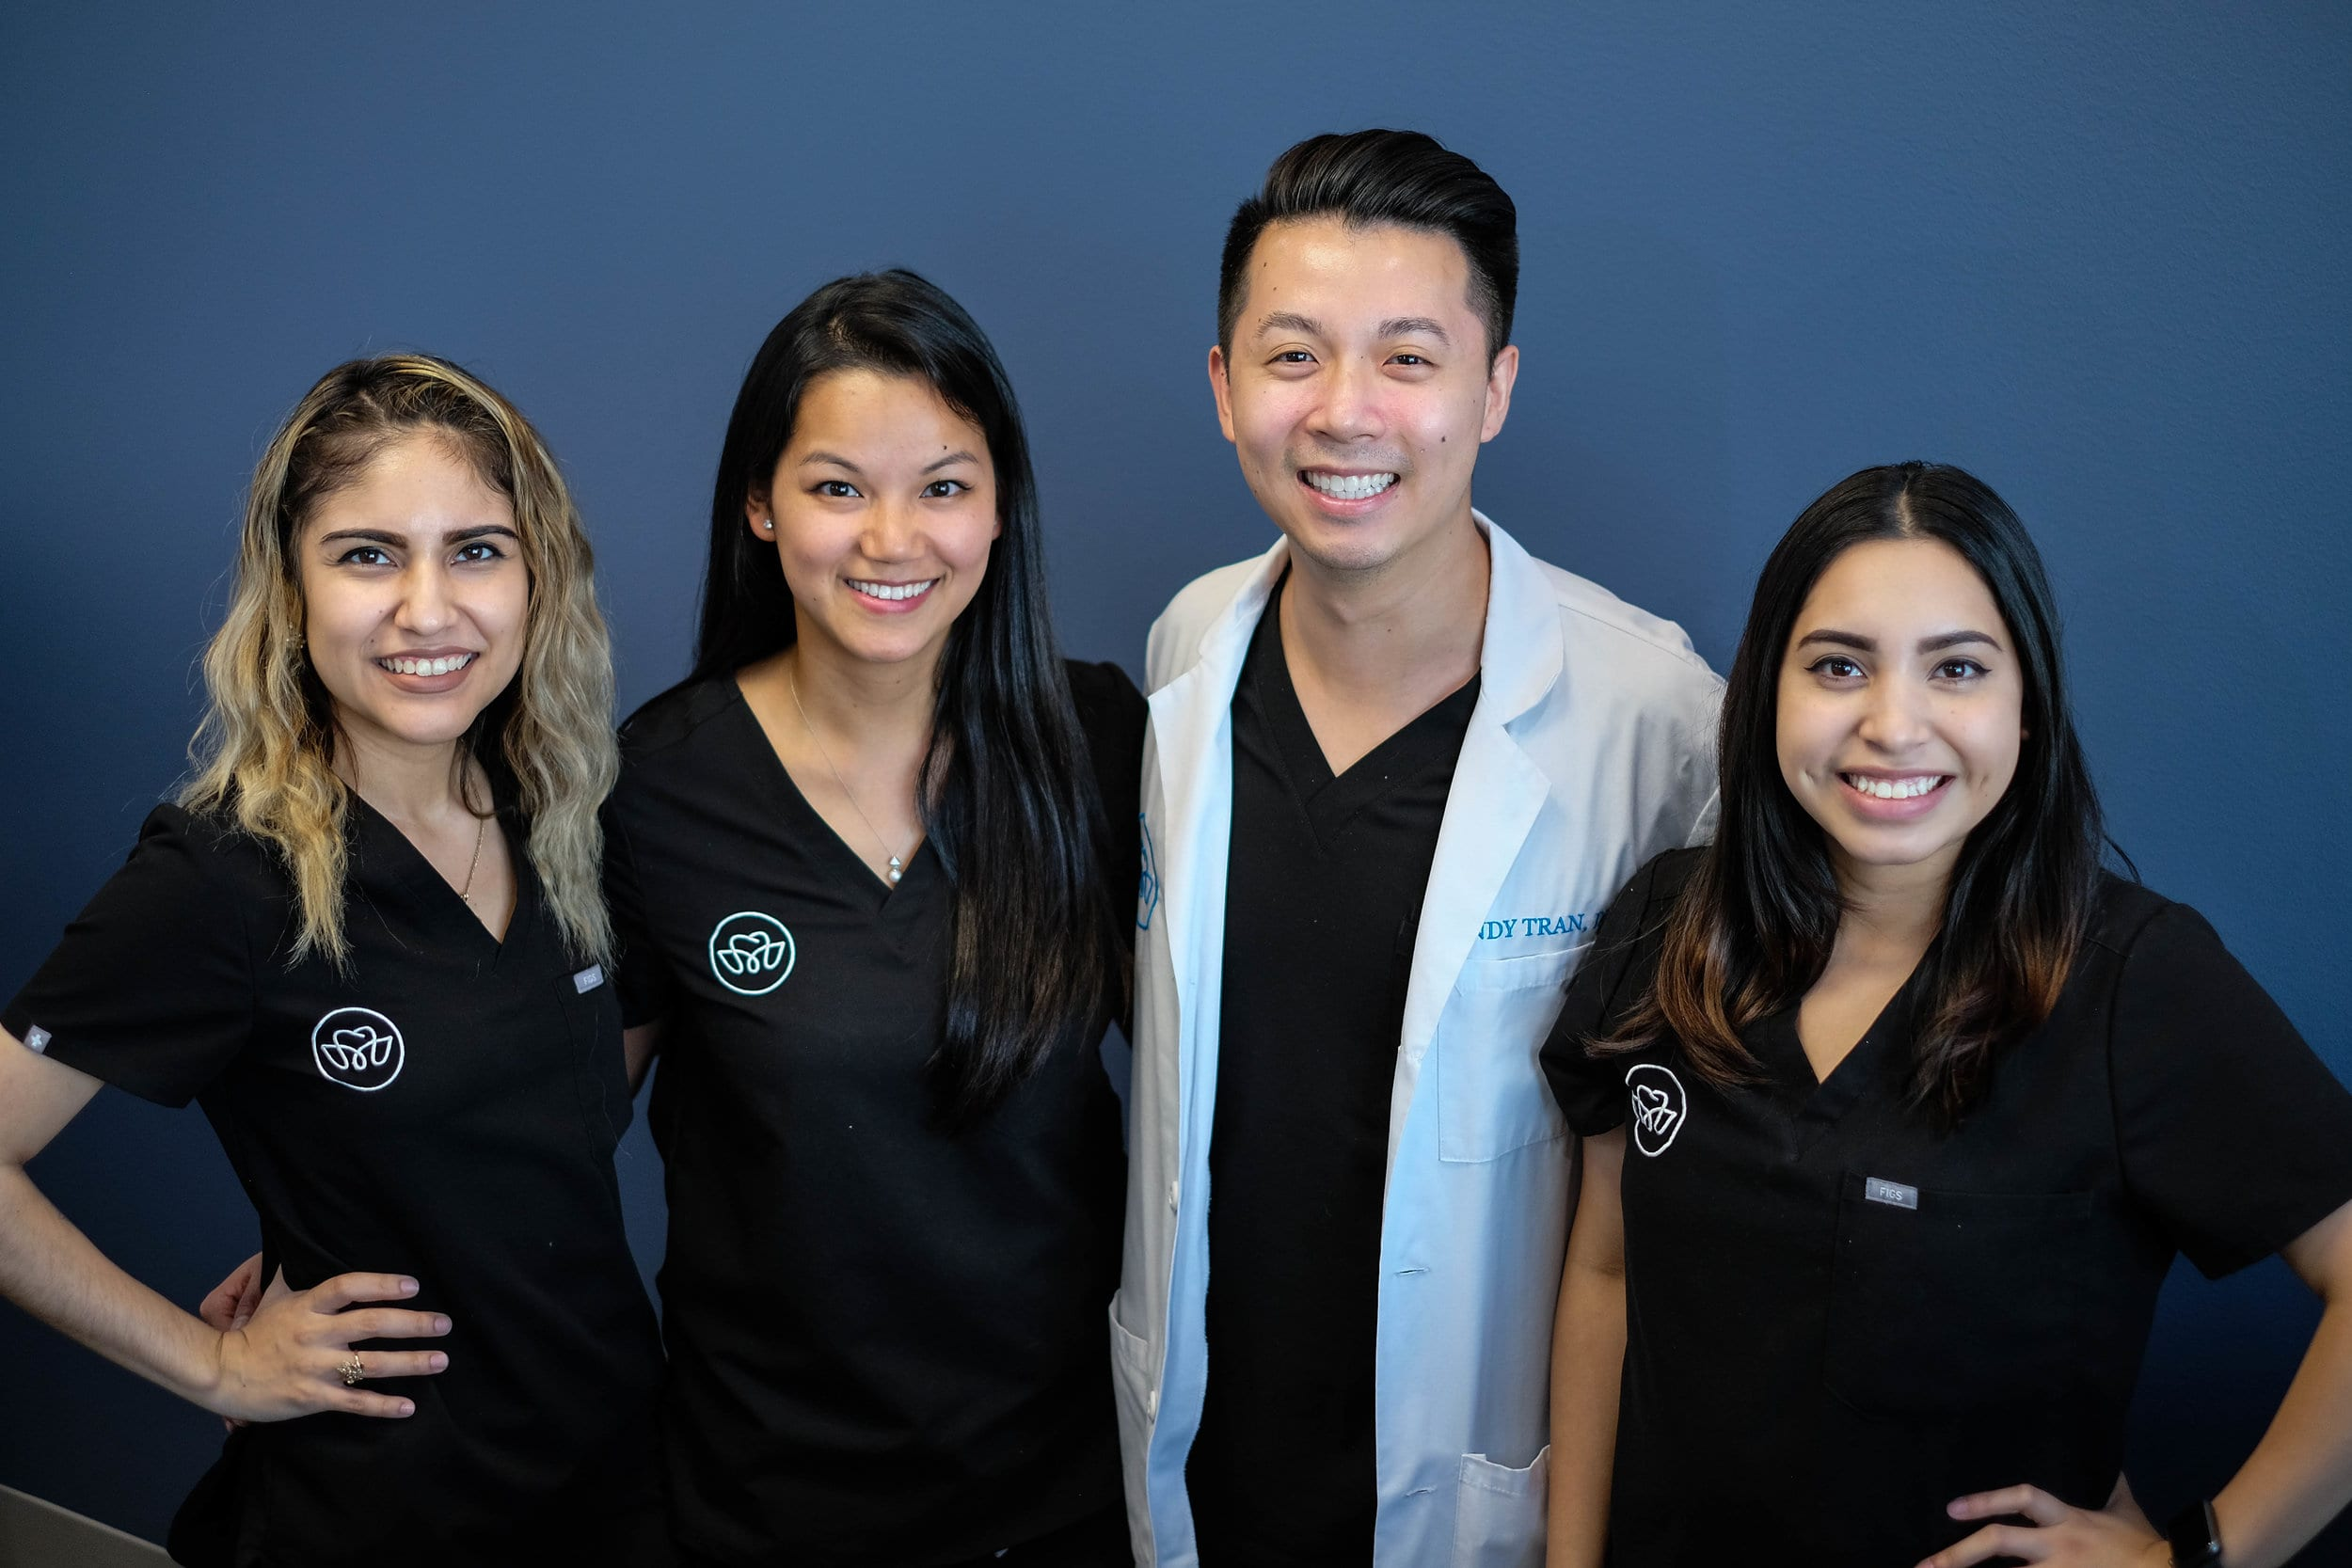 Your First Dental Supplies Order with Dr. Andy Tran DMD (Apex Dental Studio)